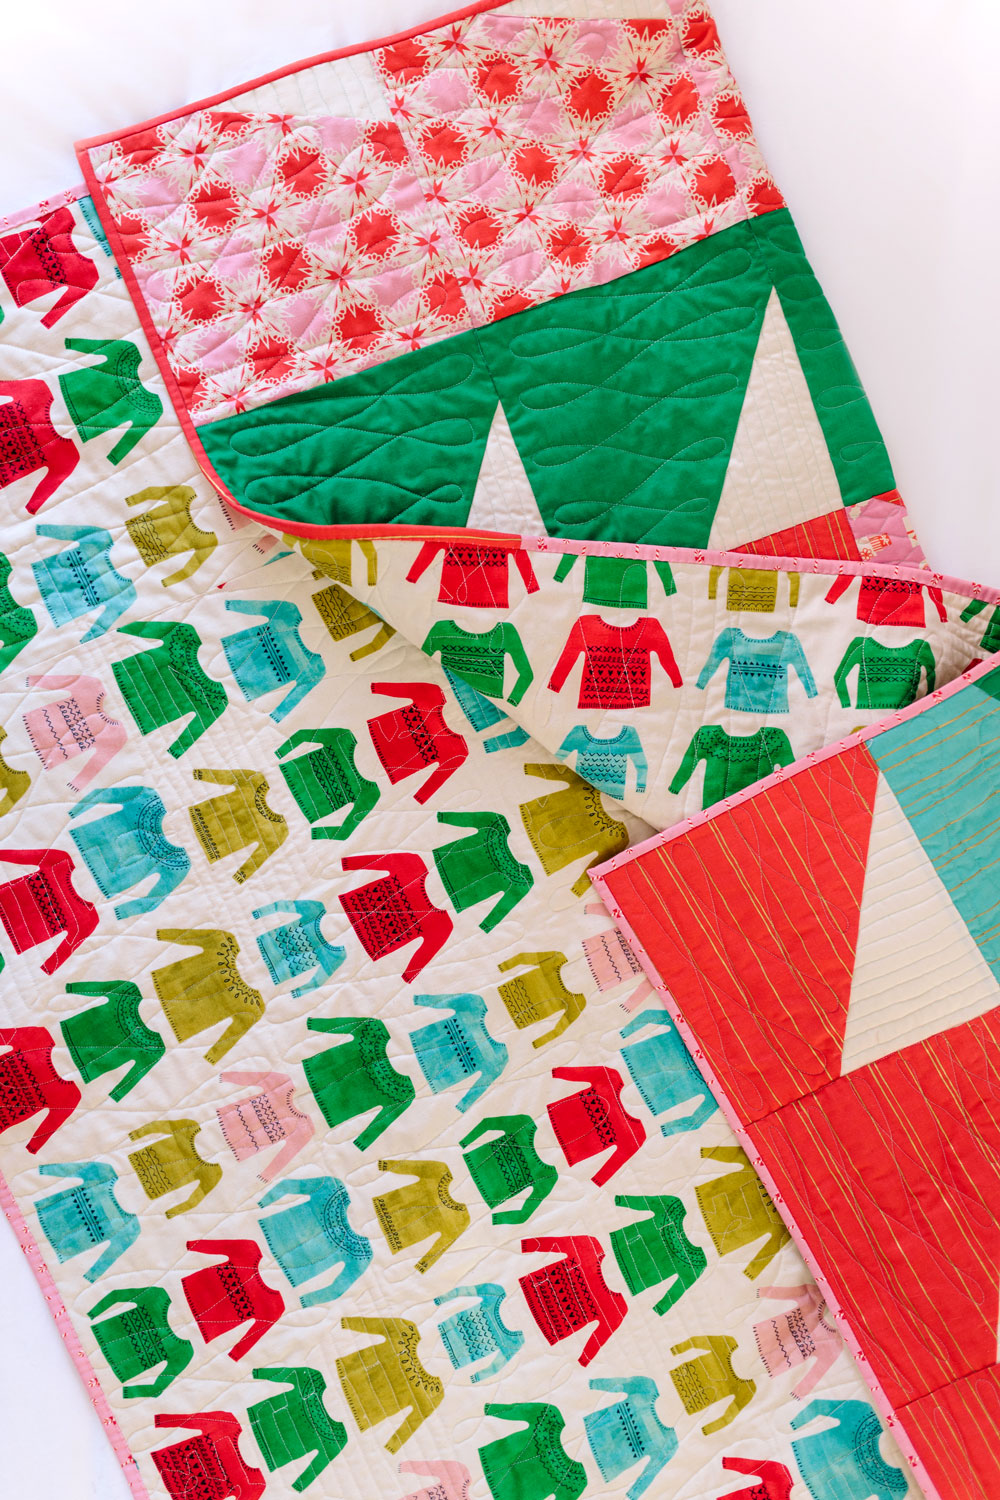 Bayside Christmas Quilt, a Fast Finish Holiday Quilt | Suzy Quilts https://suzyquilts.com/holiday-quilt-christmas-bayside